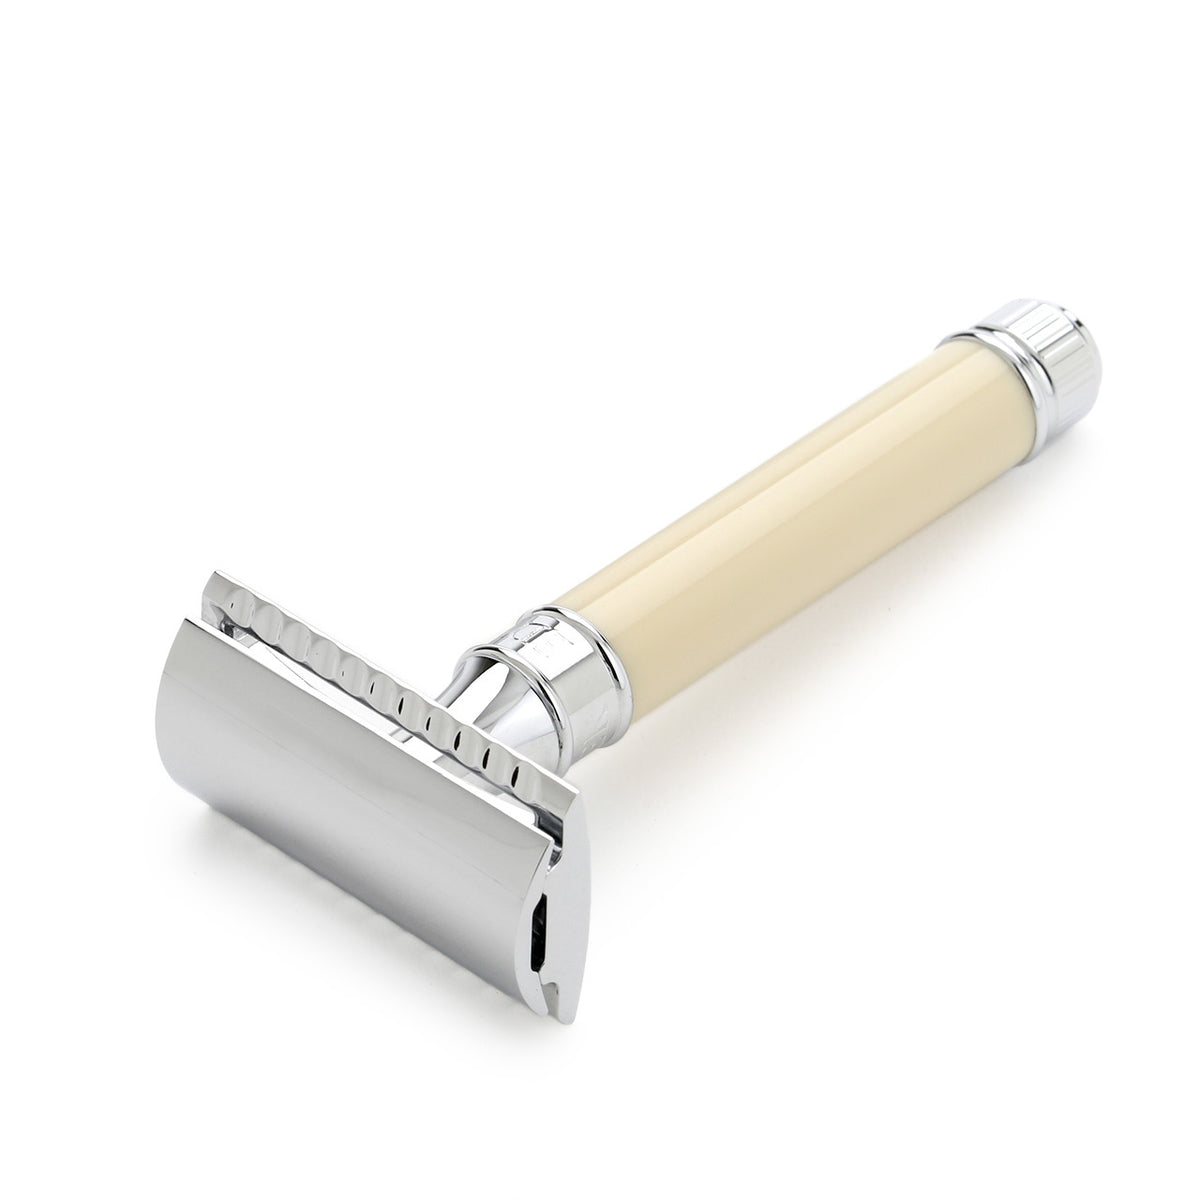 Edwin Jagger Imitation Ivory Safety Razor